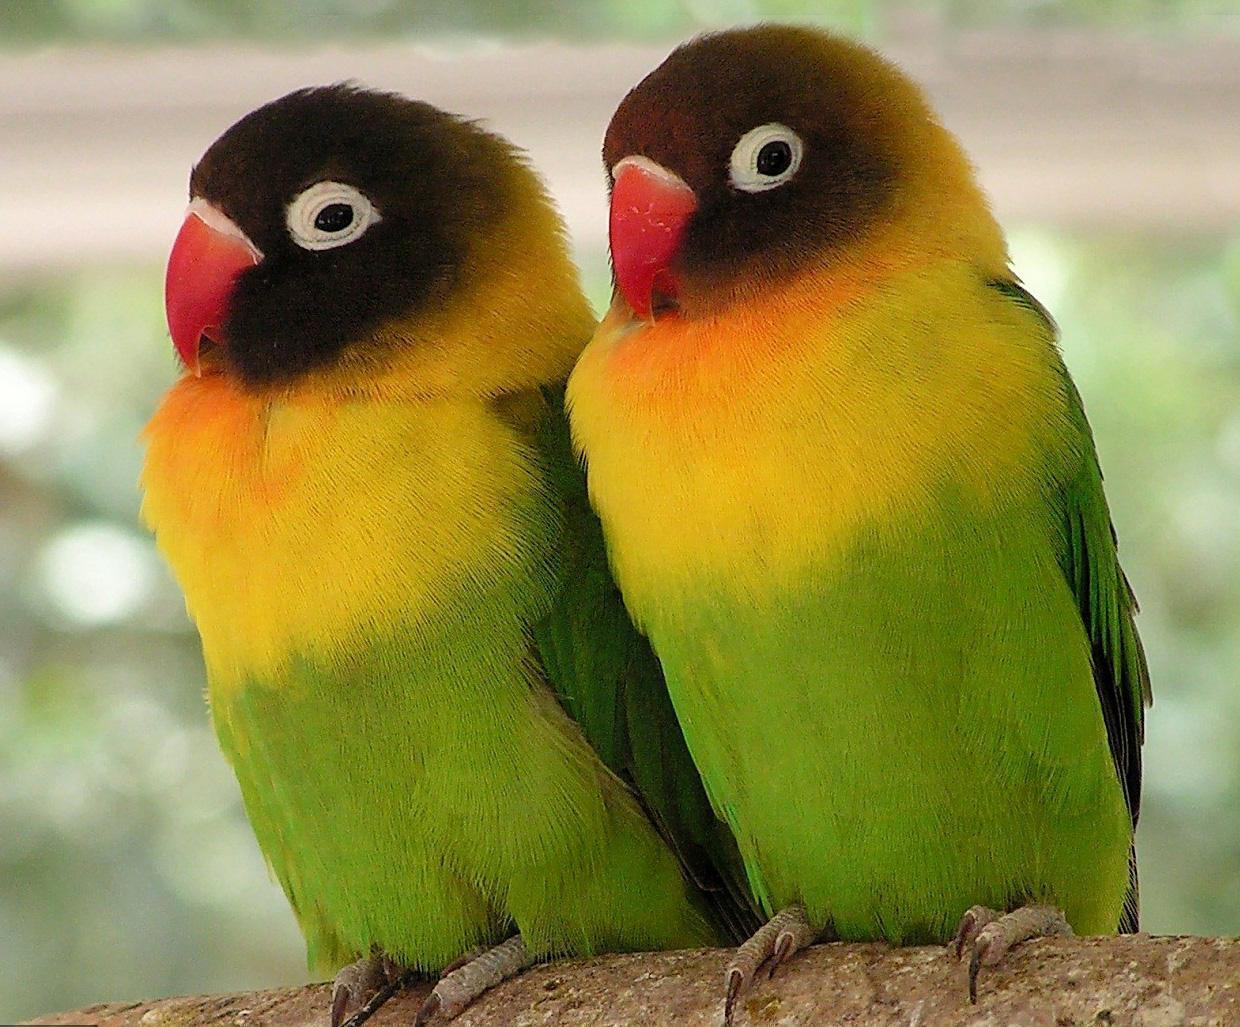 Love Birds couple Wallpaper : Love Bird Wallpapers - Wallpaper cave